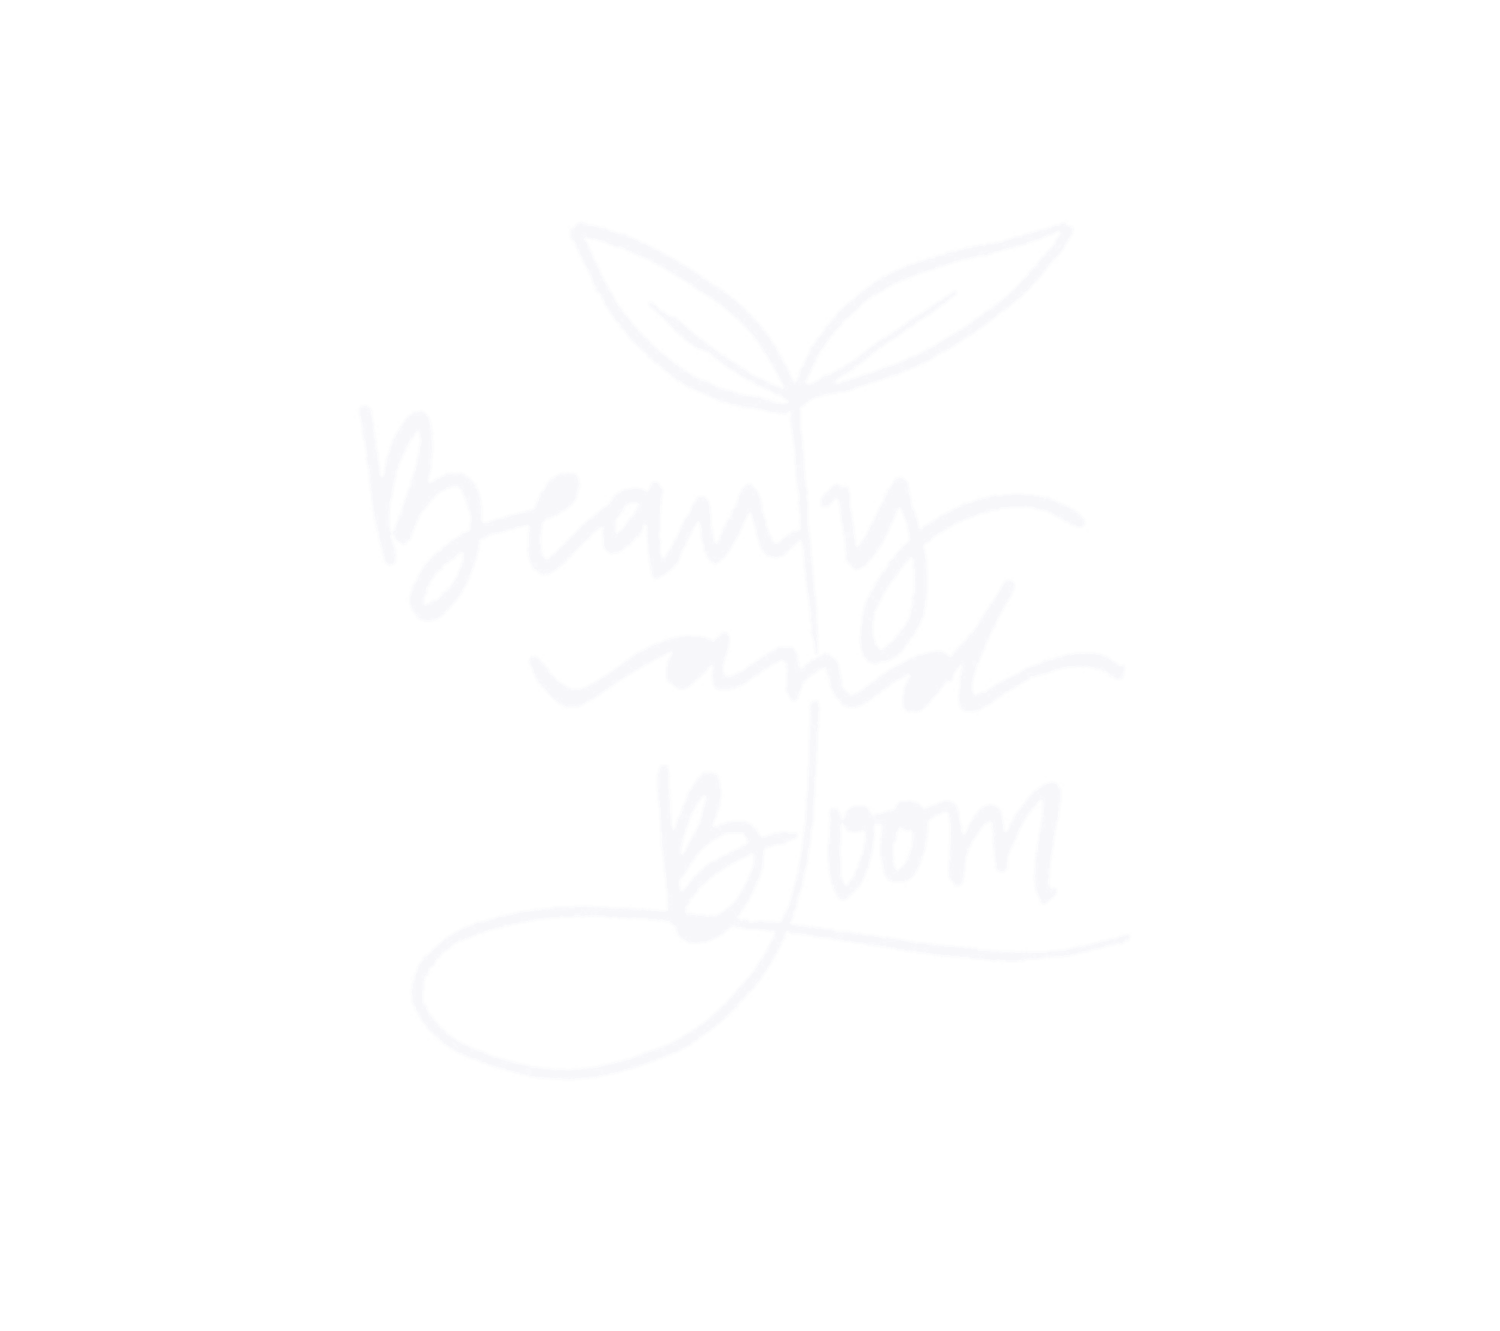 https://momentumprojects.com/wp-content/uploads/2019/10/BeautyandBloom_Logo_White.png